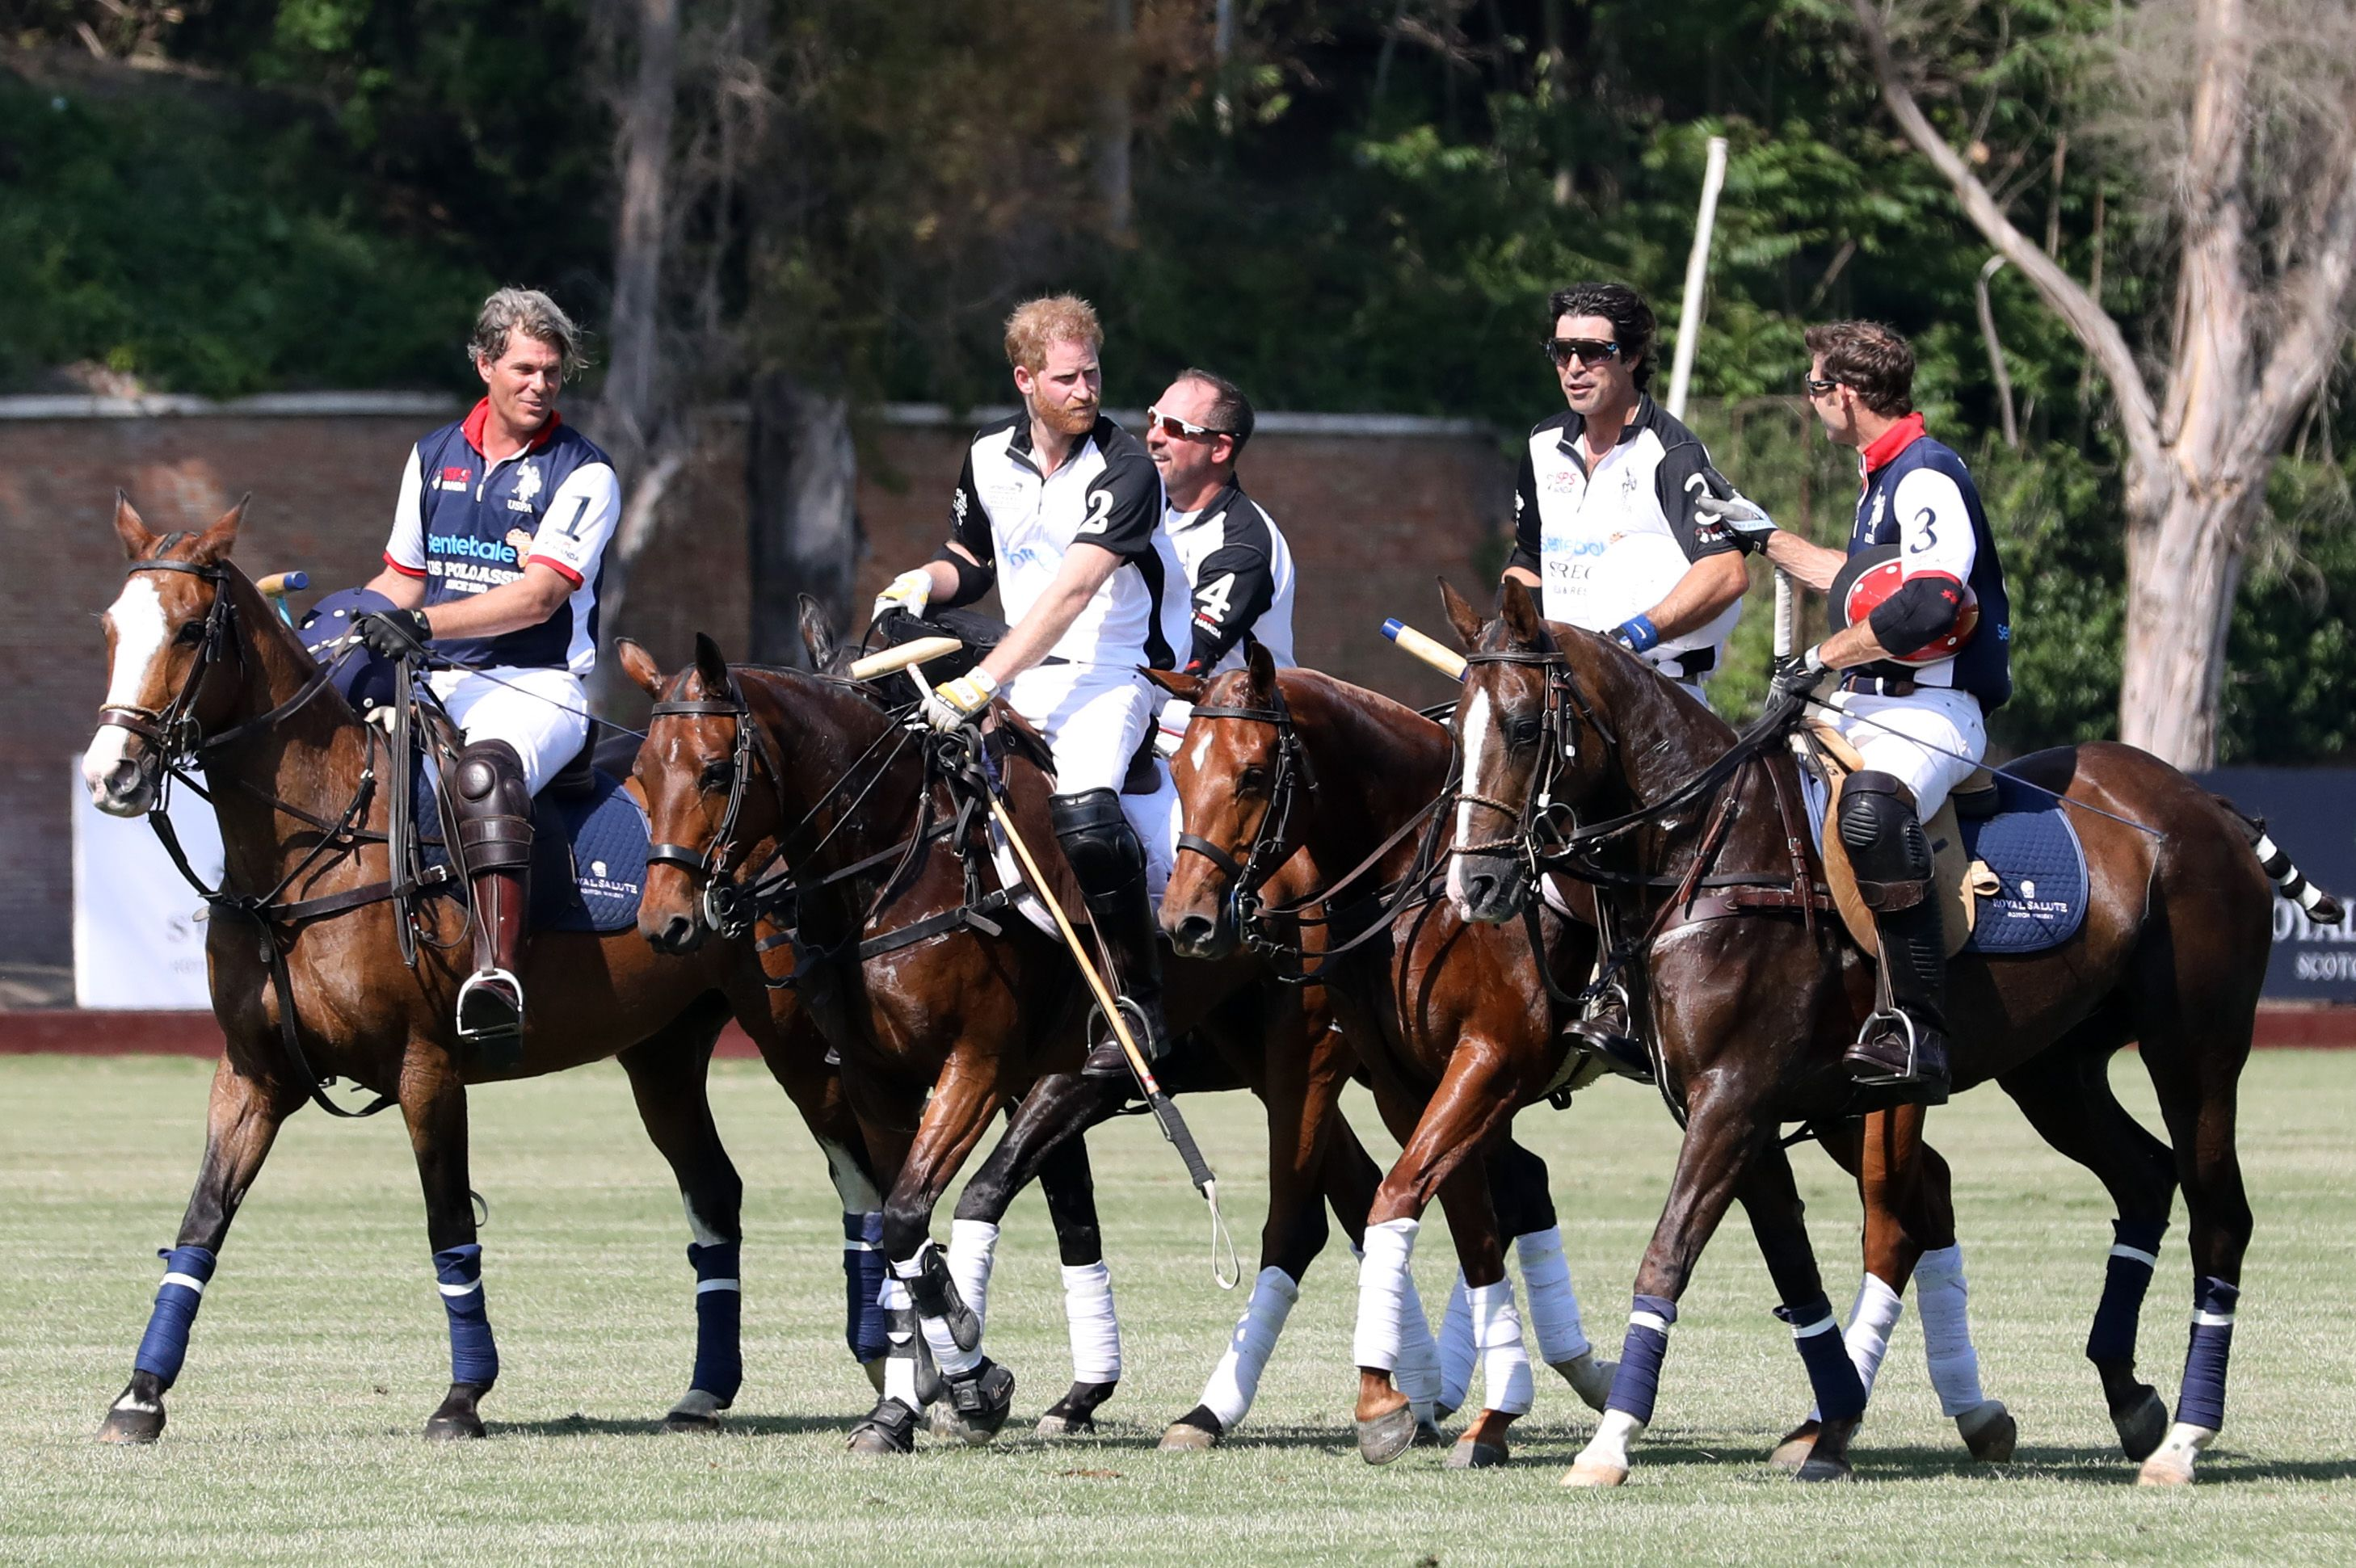 The Duke Of Sussex Attends 2019 Sentebale ISPS Handa Polo Cup In Rome